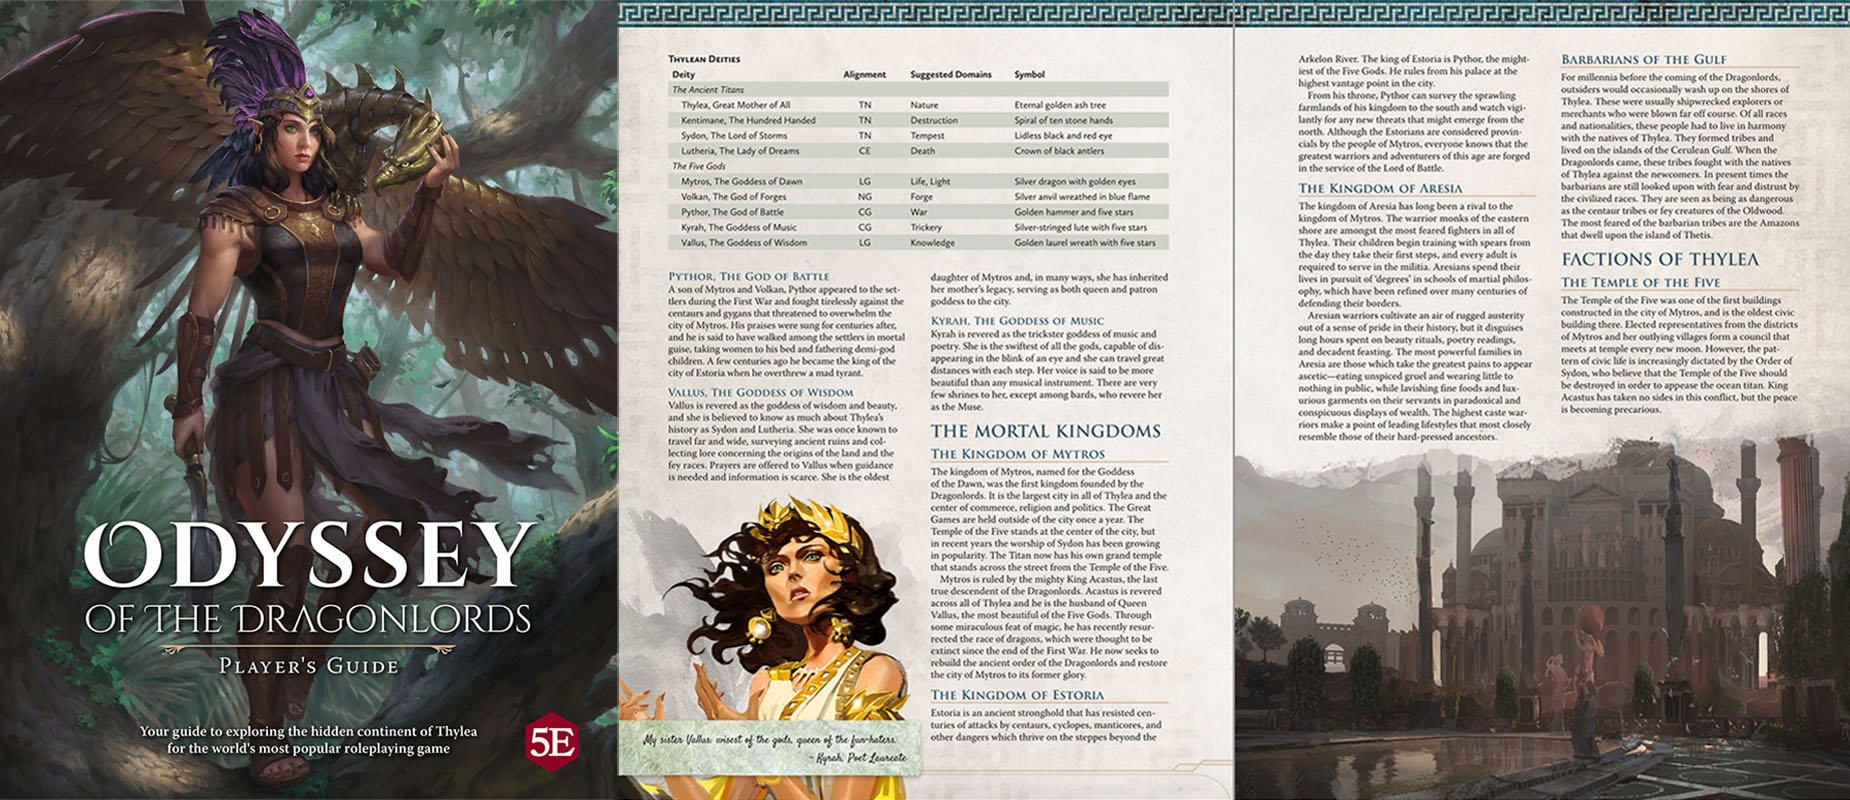 Odyssey of the Dragonlords: Player's Guide - PDF (FREE